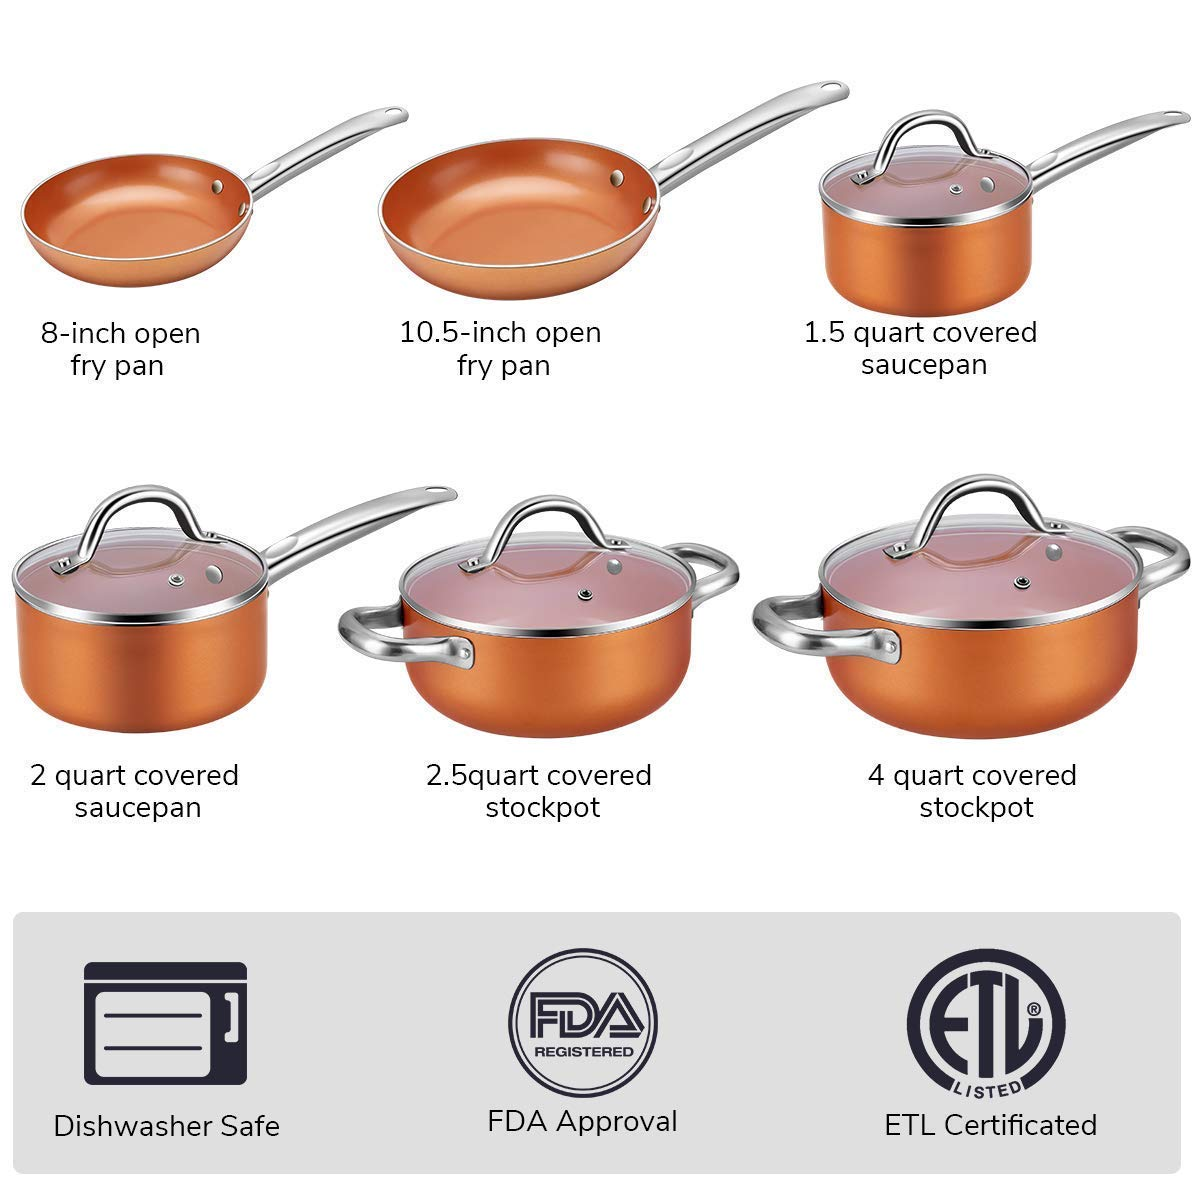 Kitchen Academy 10 Piece Nonstick Induction Cookware Set Includes Lids, Frying and Roasting Pans Accessories by Kitchen Academy (Image #8)